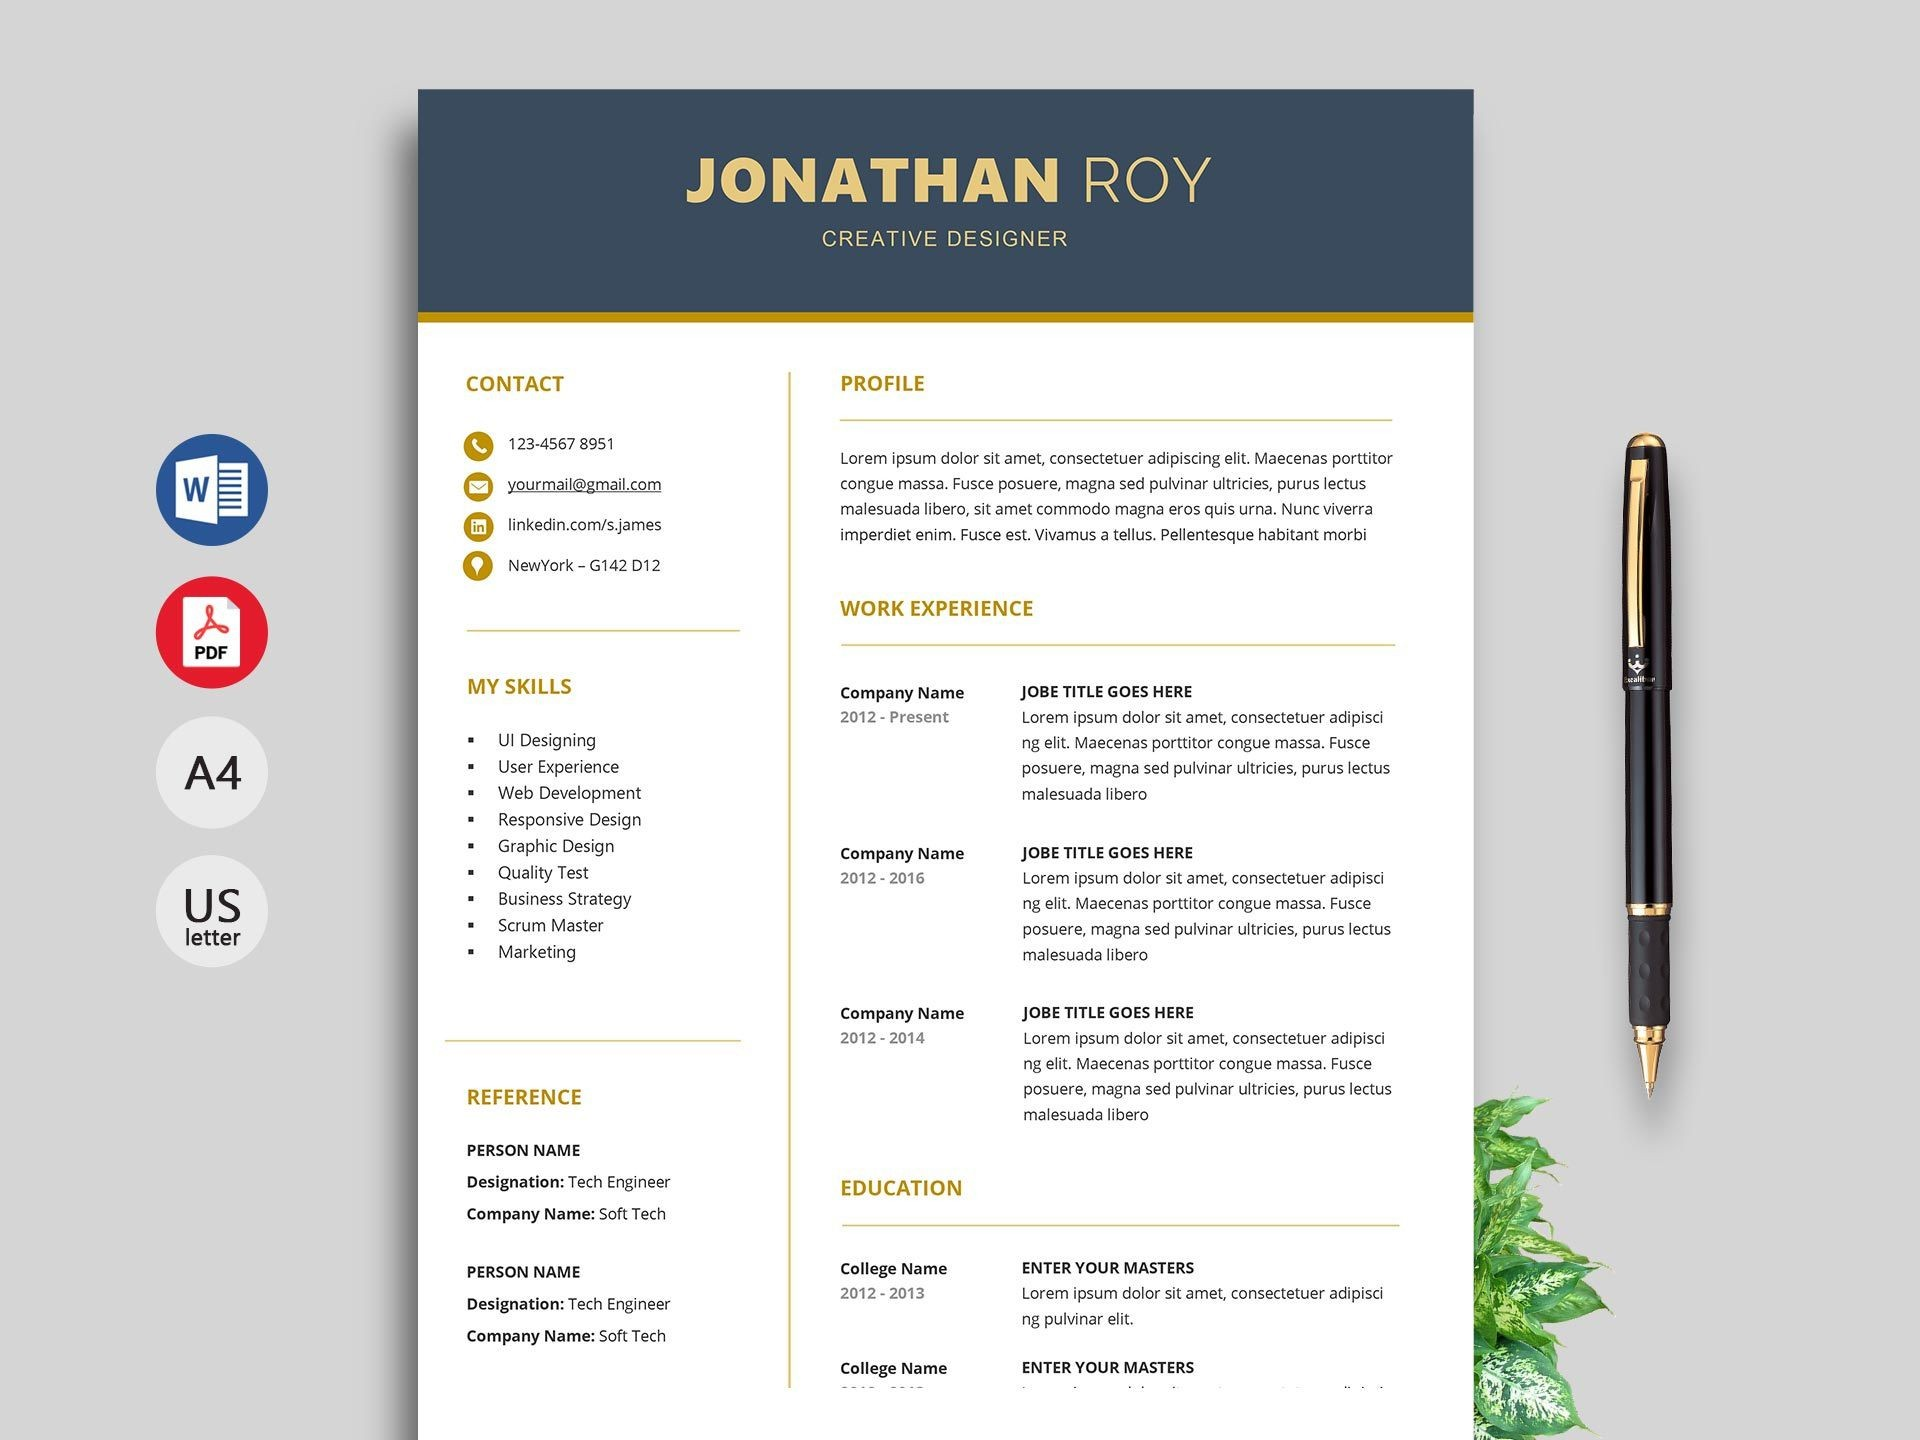 007 Rare Resume Template Free Word Download Highest Clarity  Cv With Photo Malaysia Australia1920